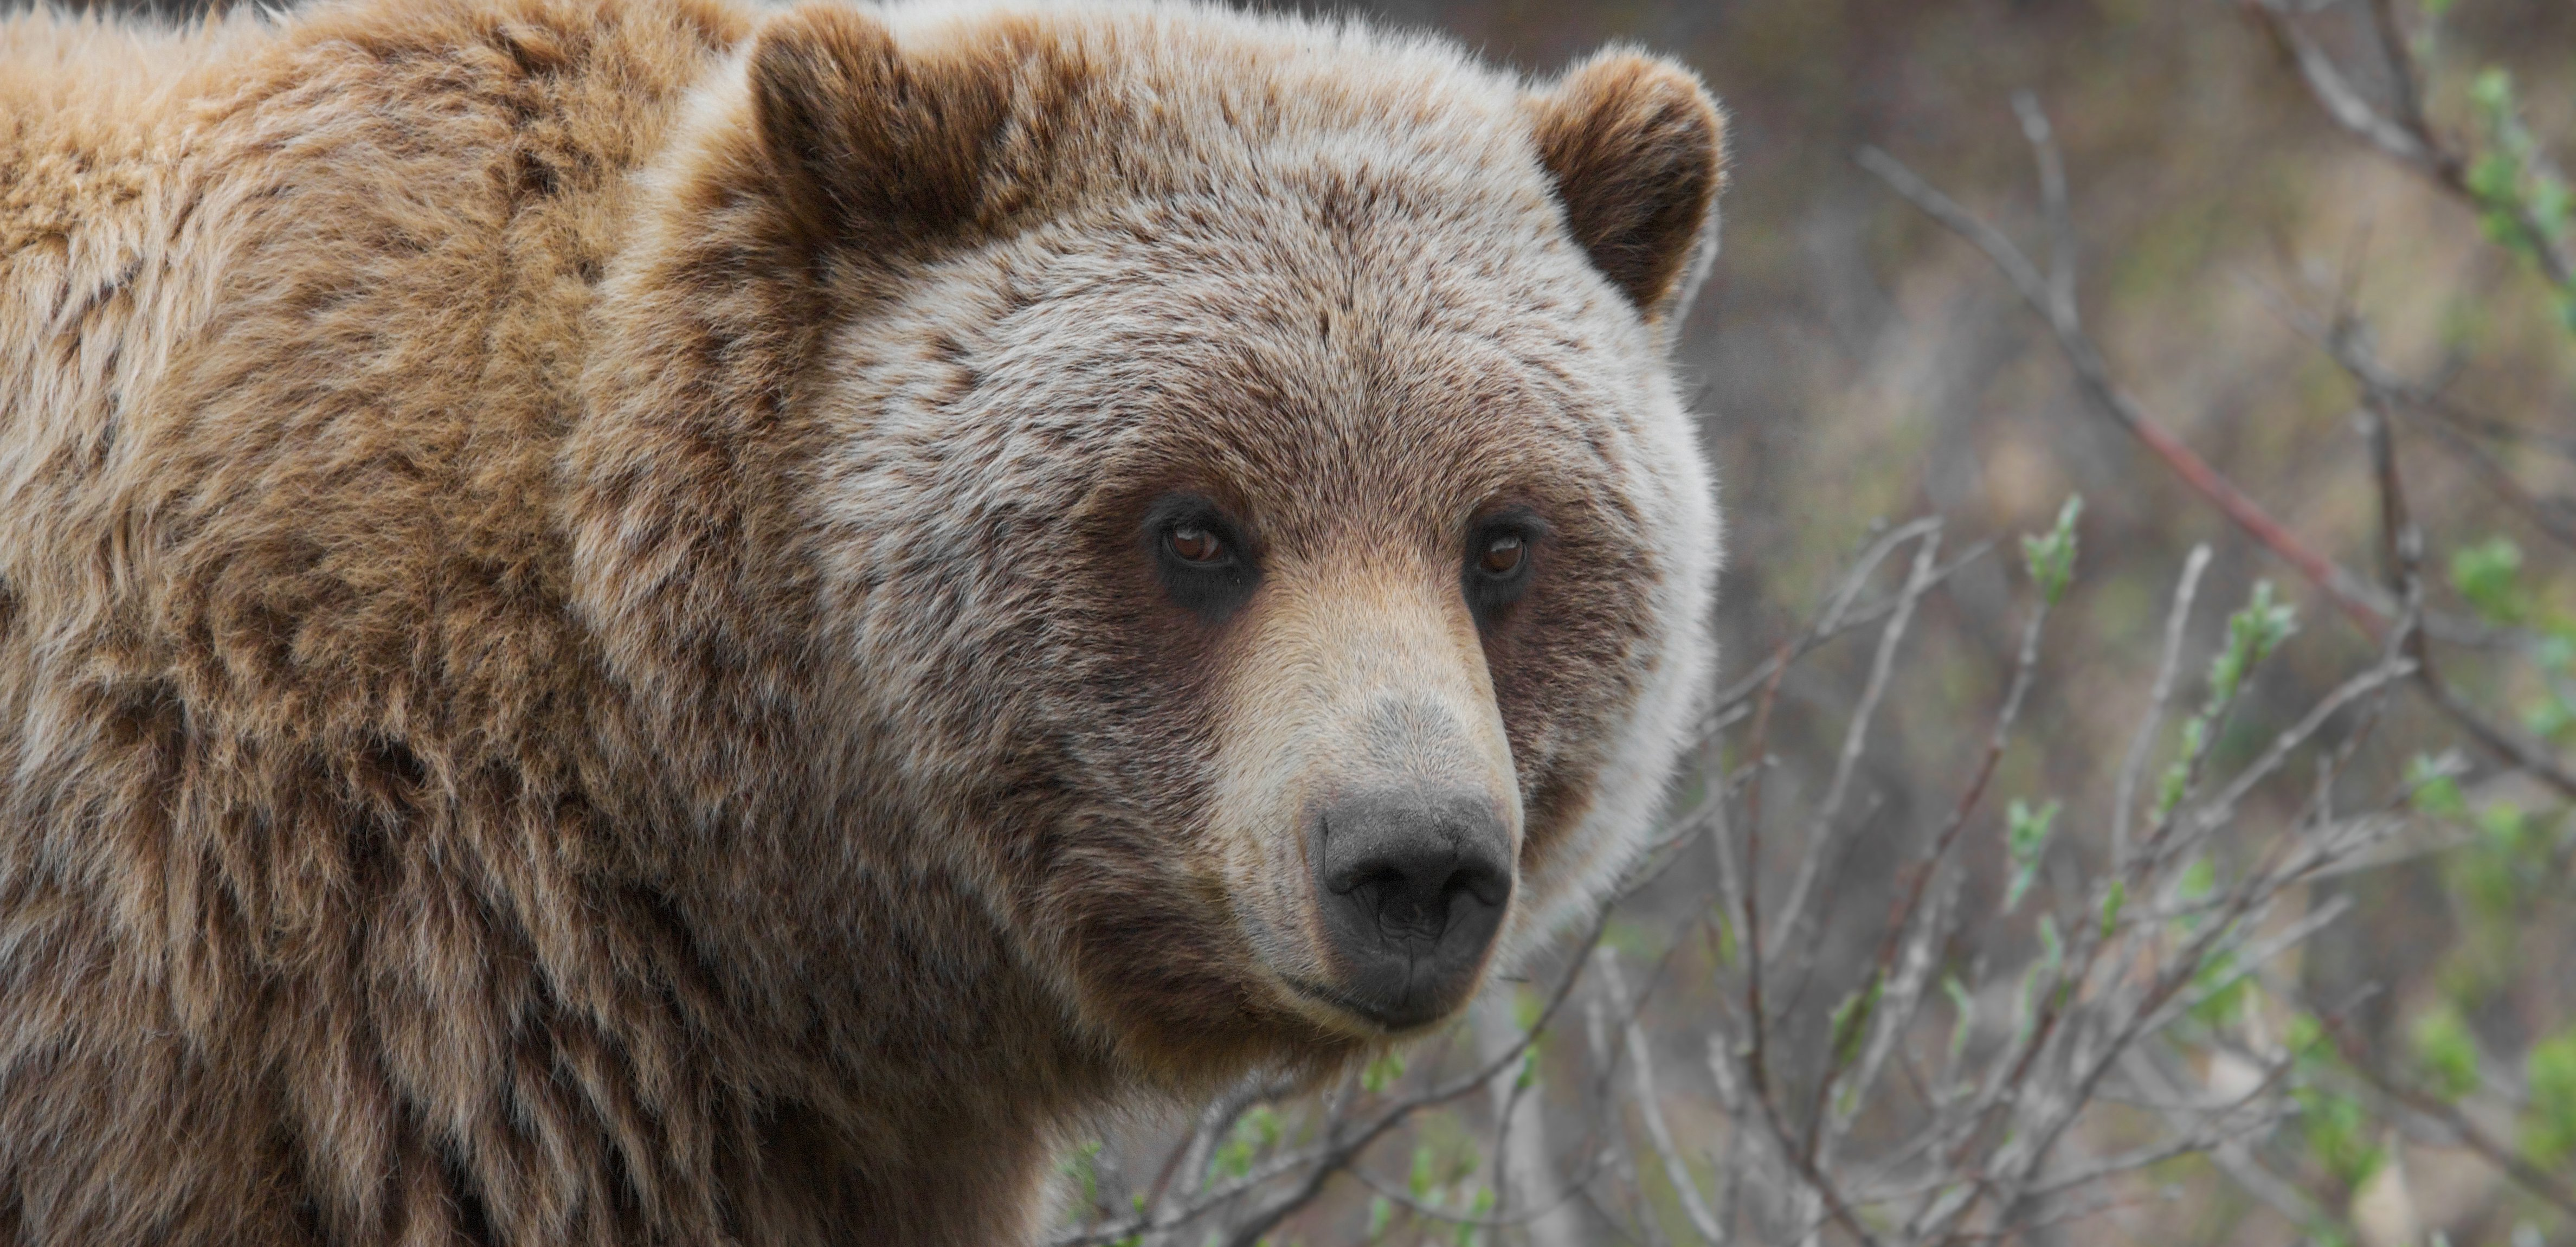 Grizzly Bears to be Placed BACK on Endangered Species List